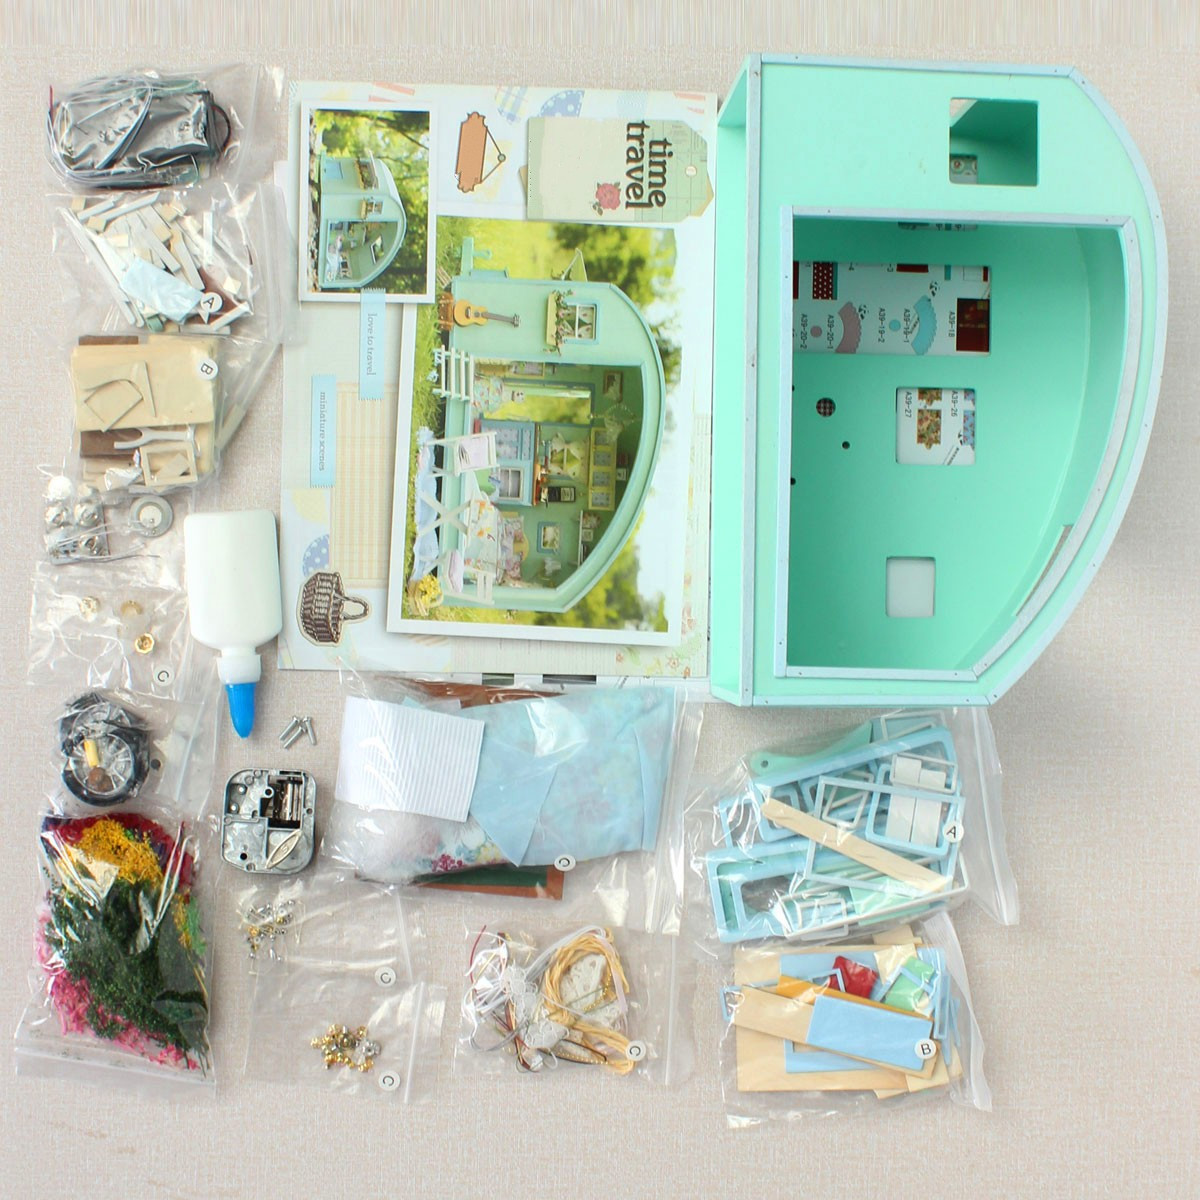 Best ideas about DIY Dollhouse Kit . Save or Pin Cuteroom DIY Wooden Dollhouse Miniature Kit Doll house LED Now.